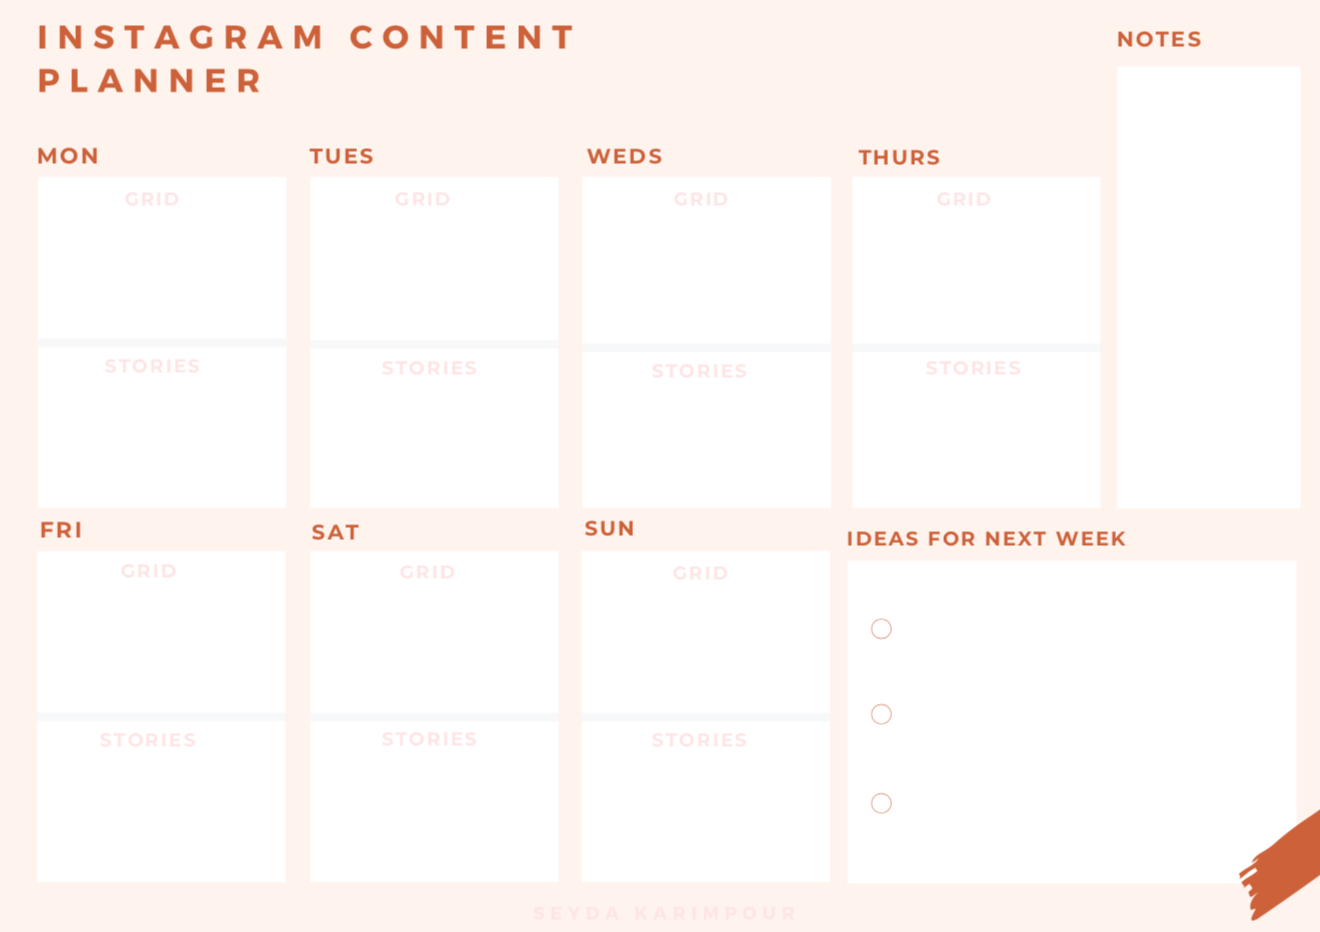 INSTAGRAM CONTENT PLANNER - I find it so helpful to plan out my IG posts for the week ahead so I created this one to use for myself and for clients. I personally prefer pen to paper but you can fill in the planner digitally or you can print out a month's worth and staple them together!